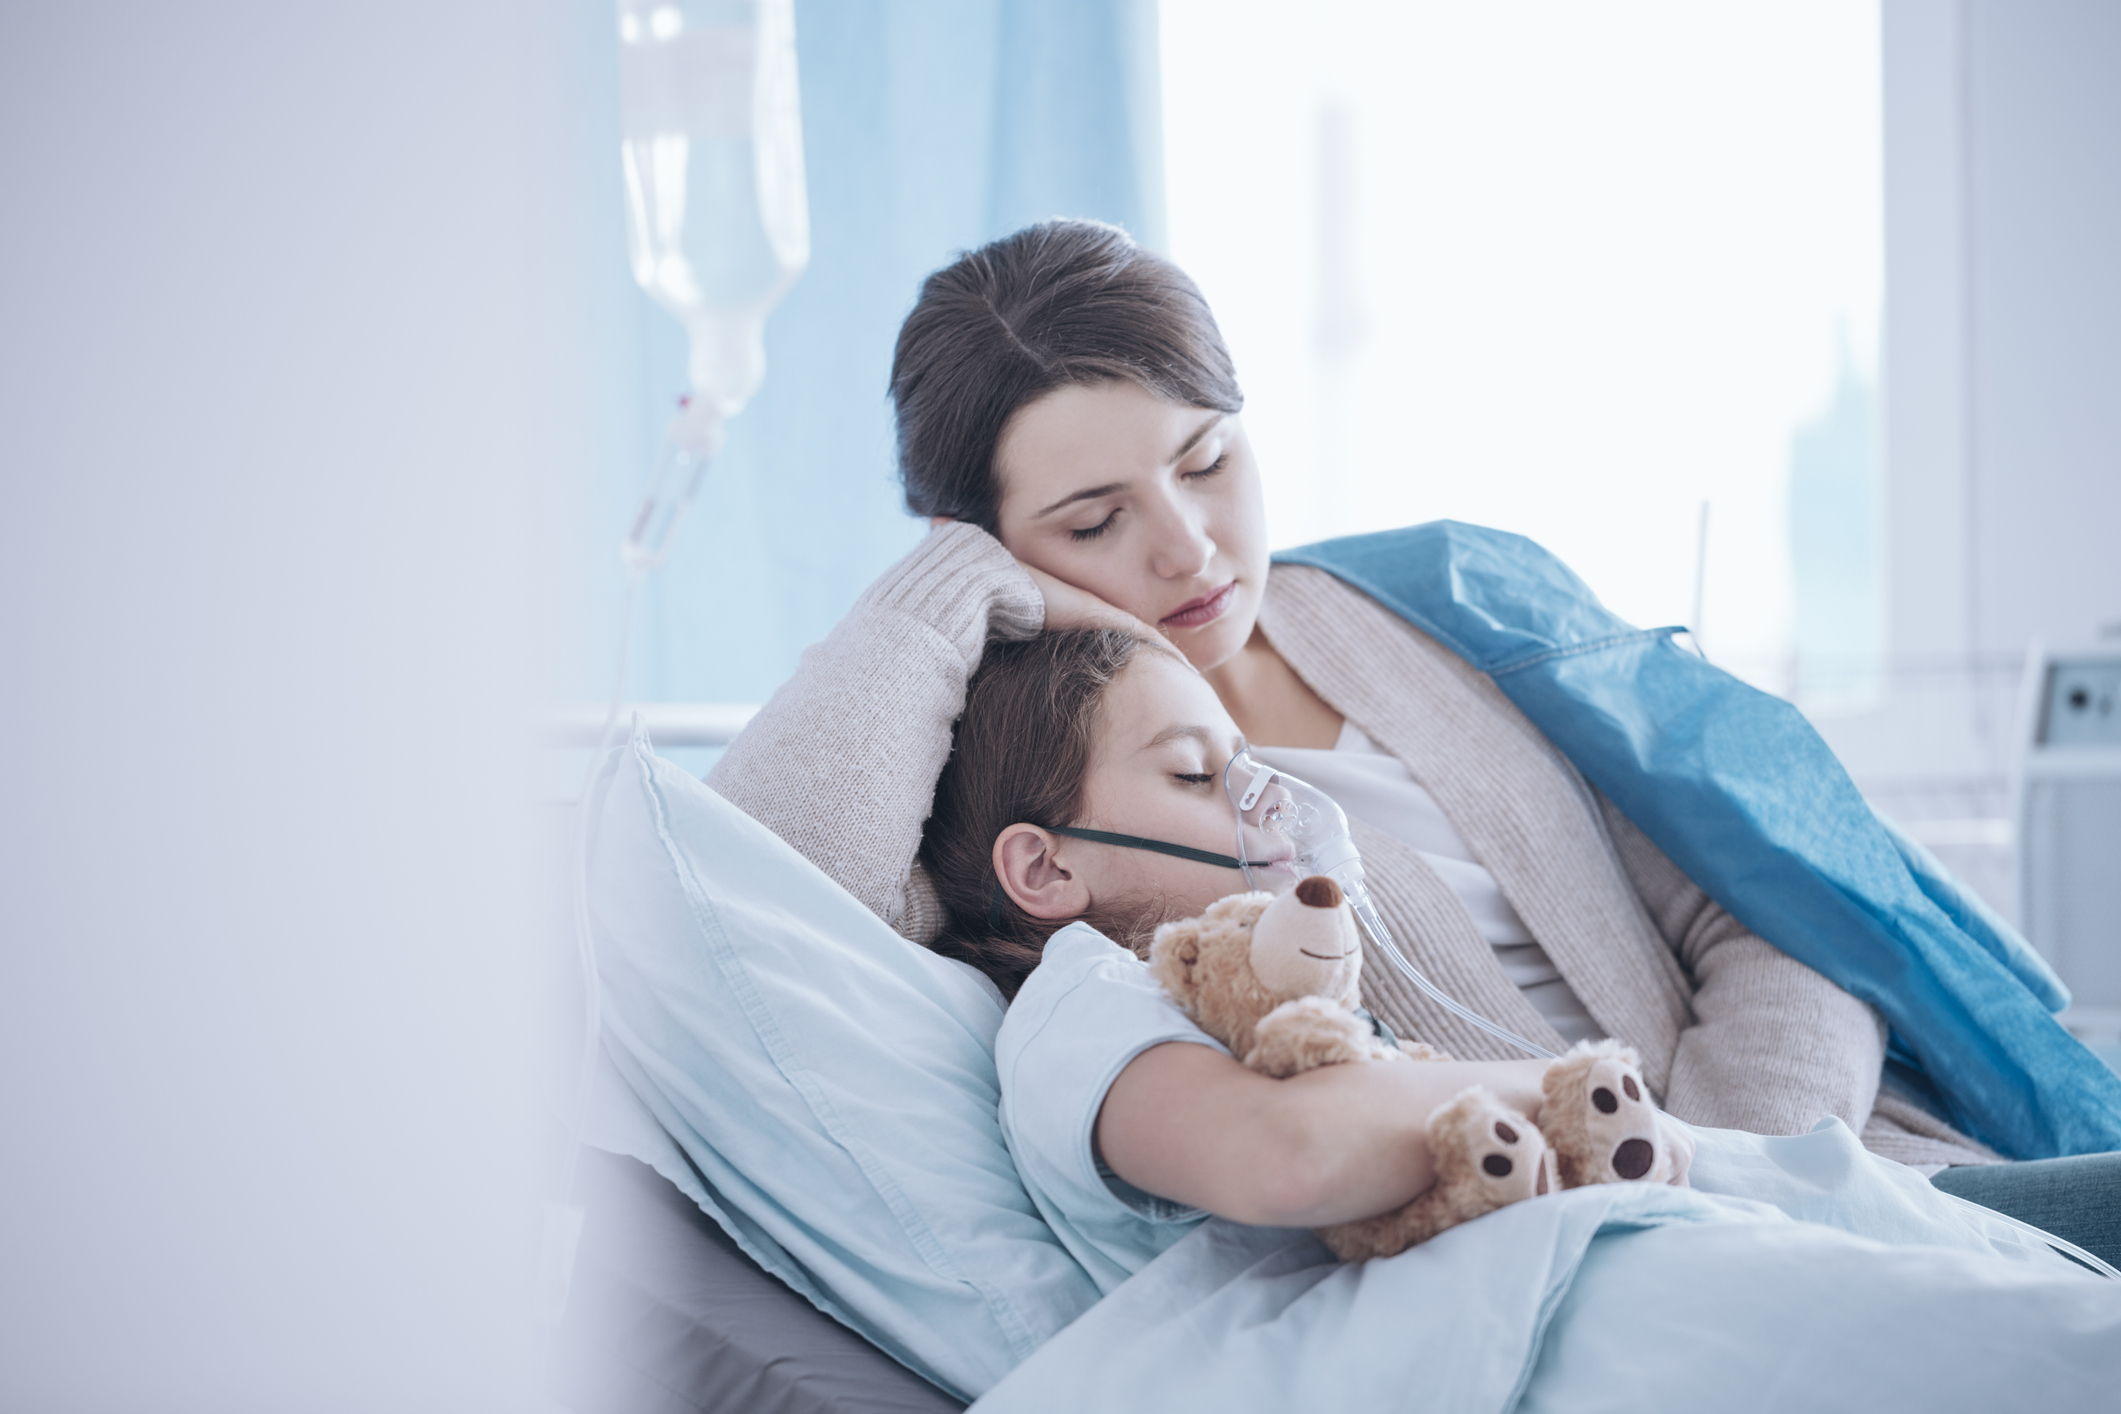 Mother taking care of sick daughter with oxygen mask and teddy bear. Image credit: iStock